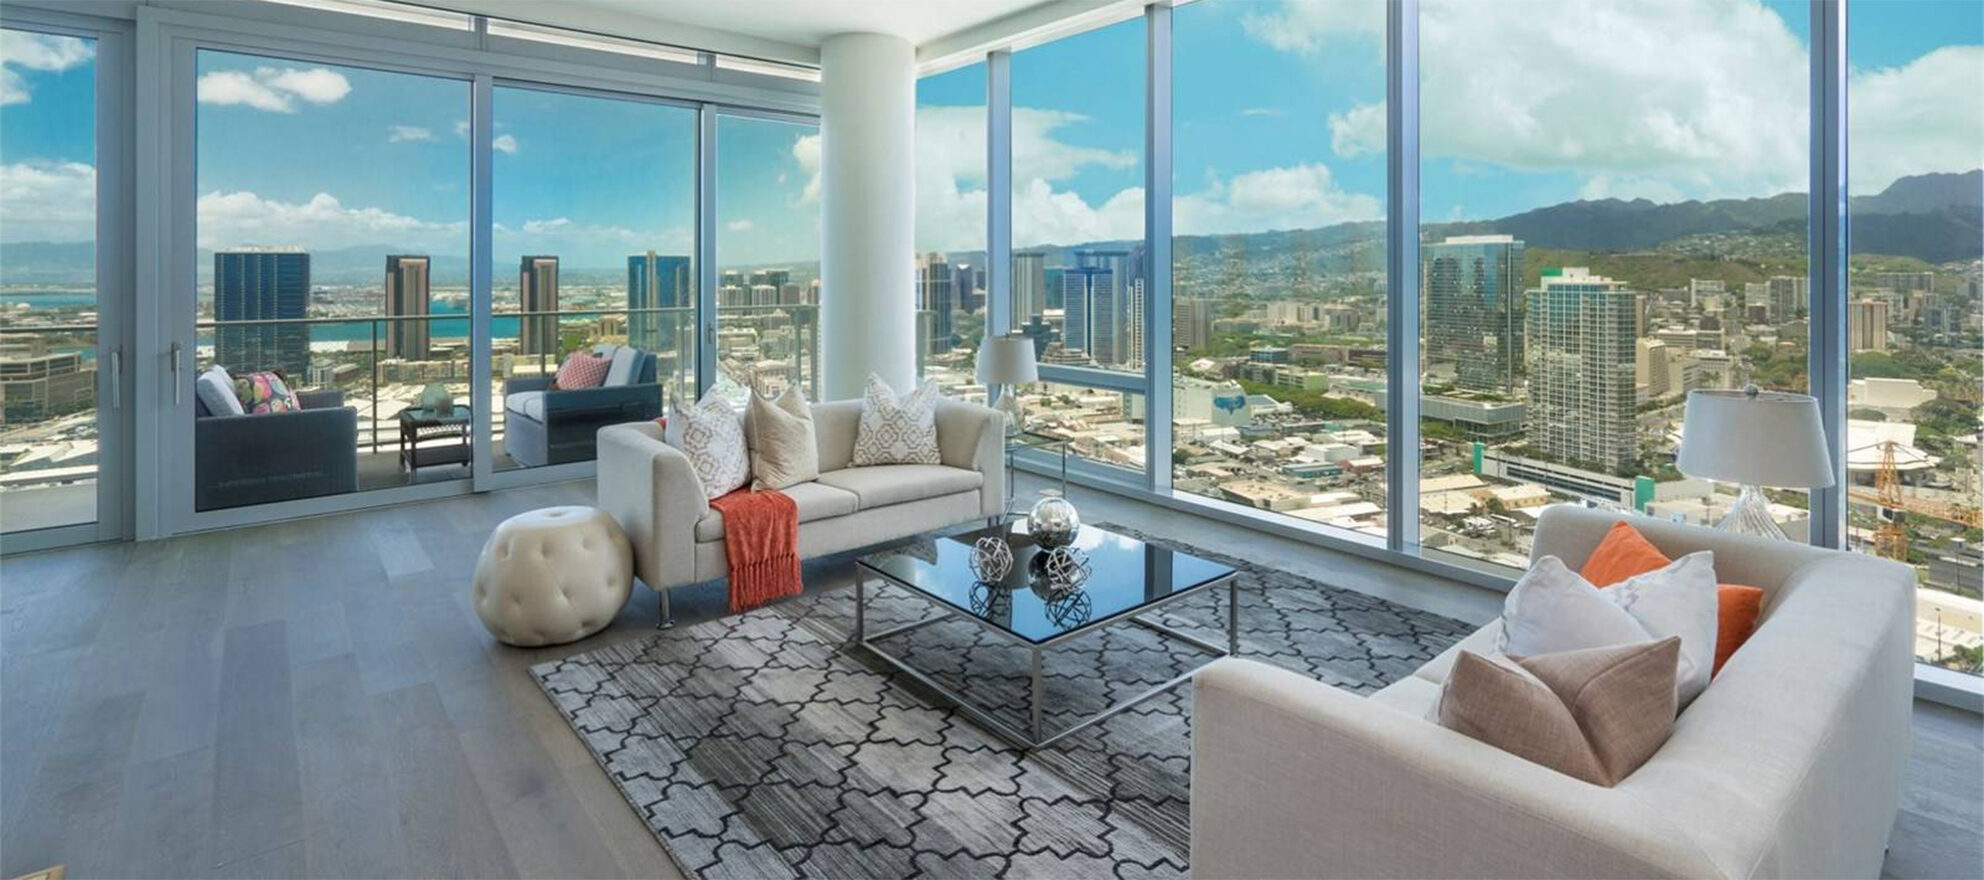 5 tactics for selling ultra-high-end condos